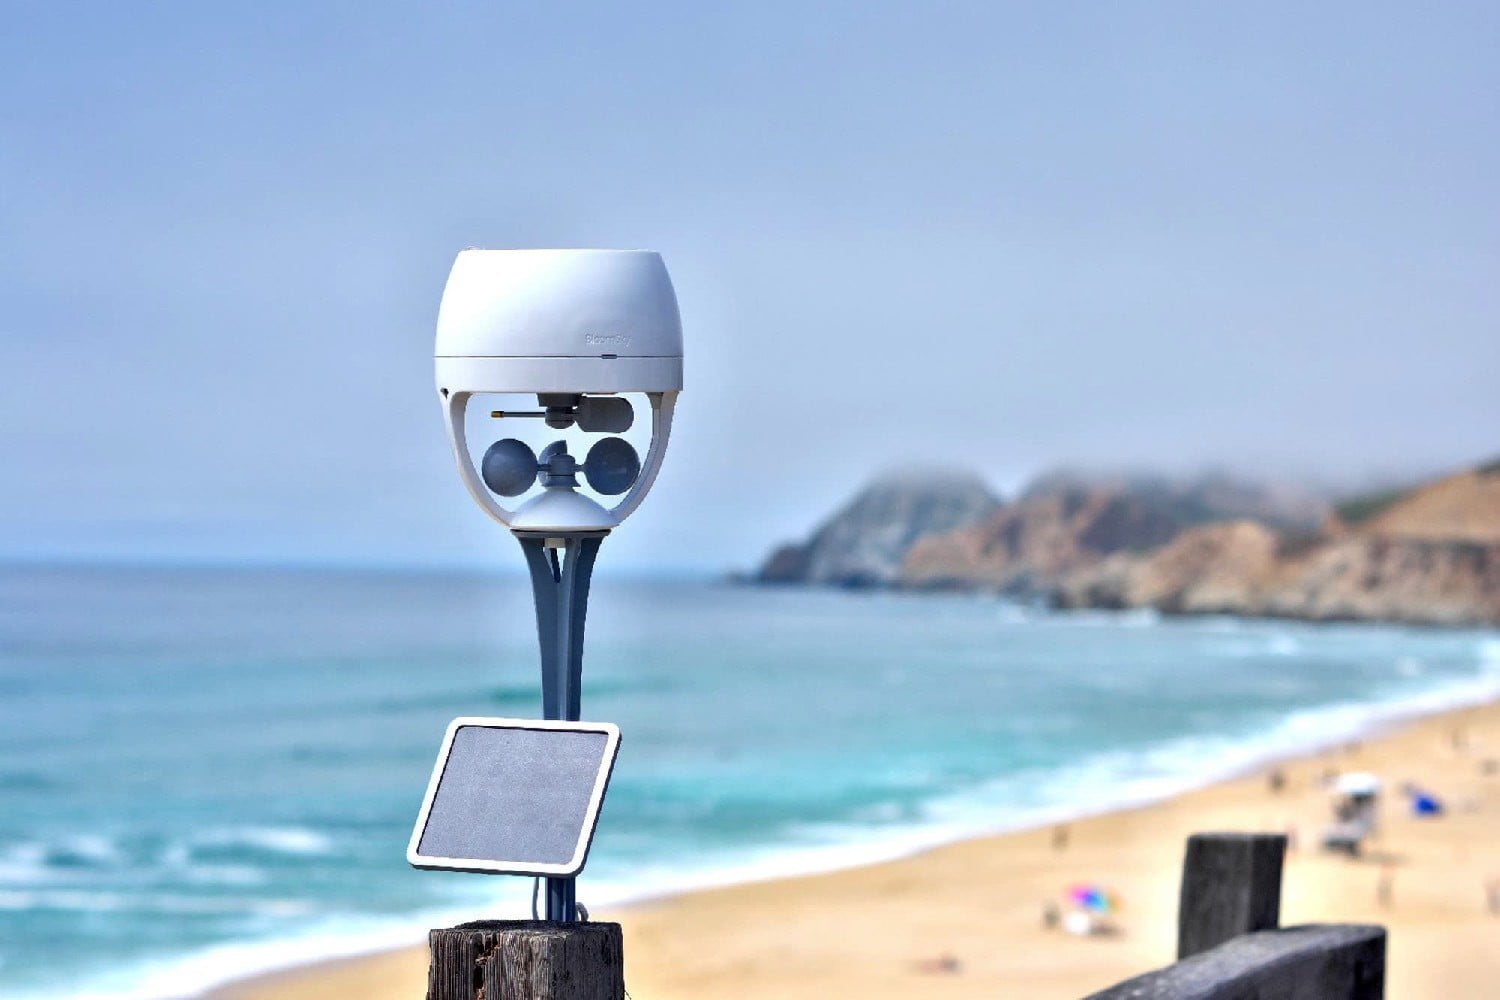 Best Home Weather Station 2019 The Best Home Weather Stations of 2019 | Digital Trends